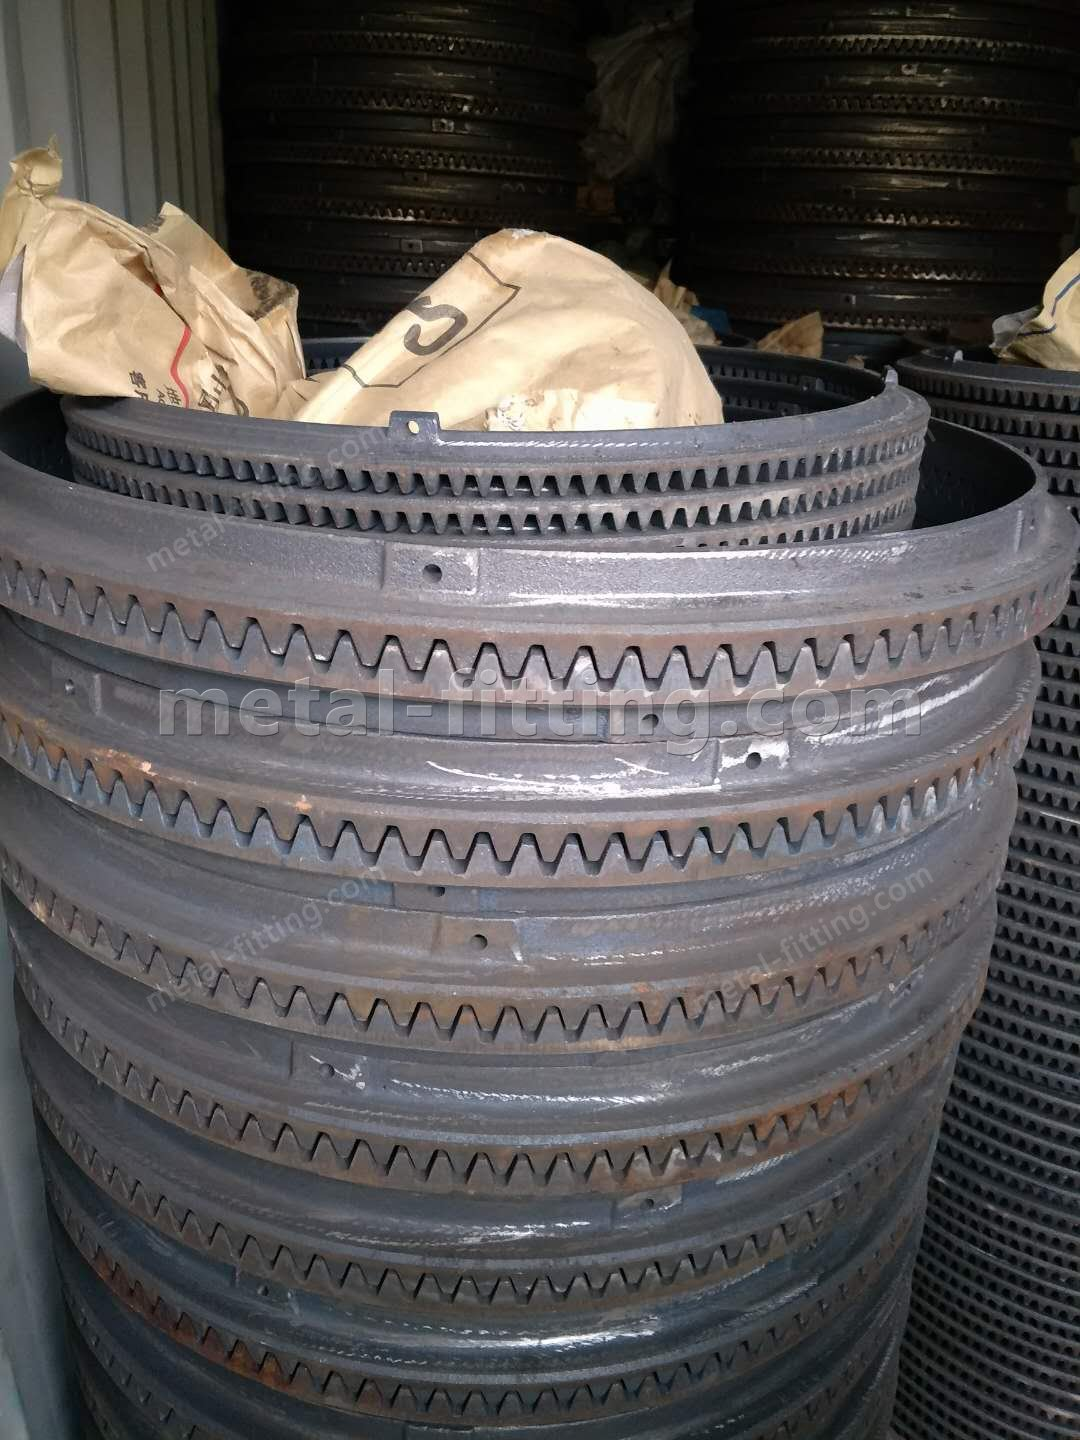 GG20 ductile iron concrete/cement mixer wheels  ring gear ring  pinion gears-507970470670328015